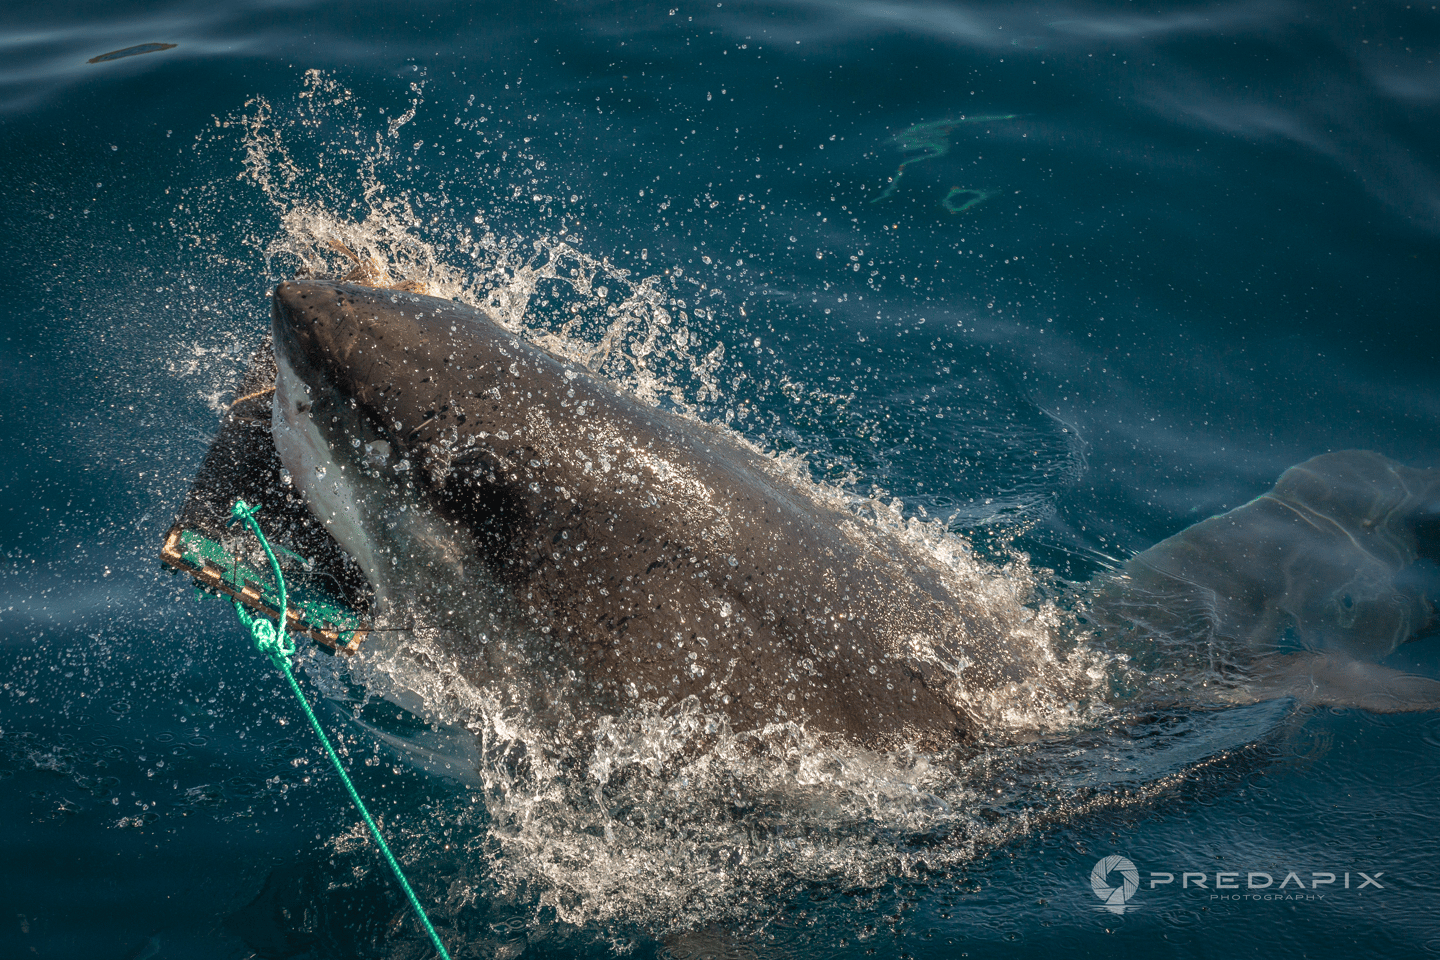 According to the 2018 Global Shark Attack Summary, 53 percent of shark attacks were on surfers